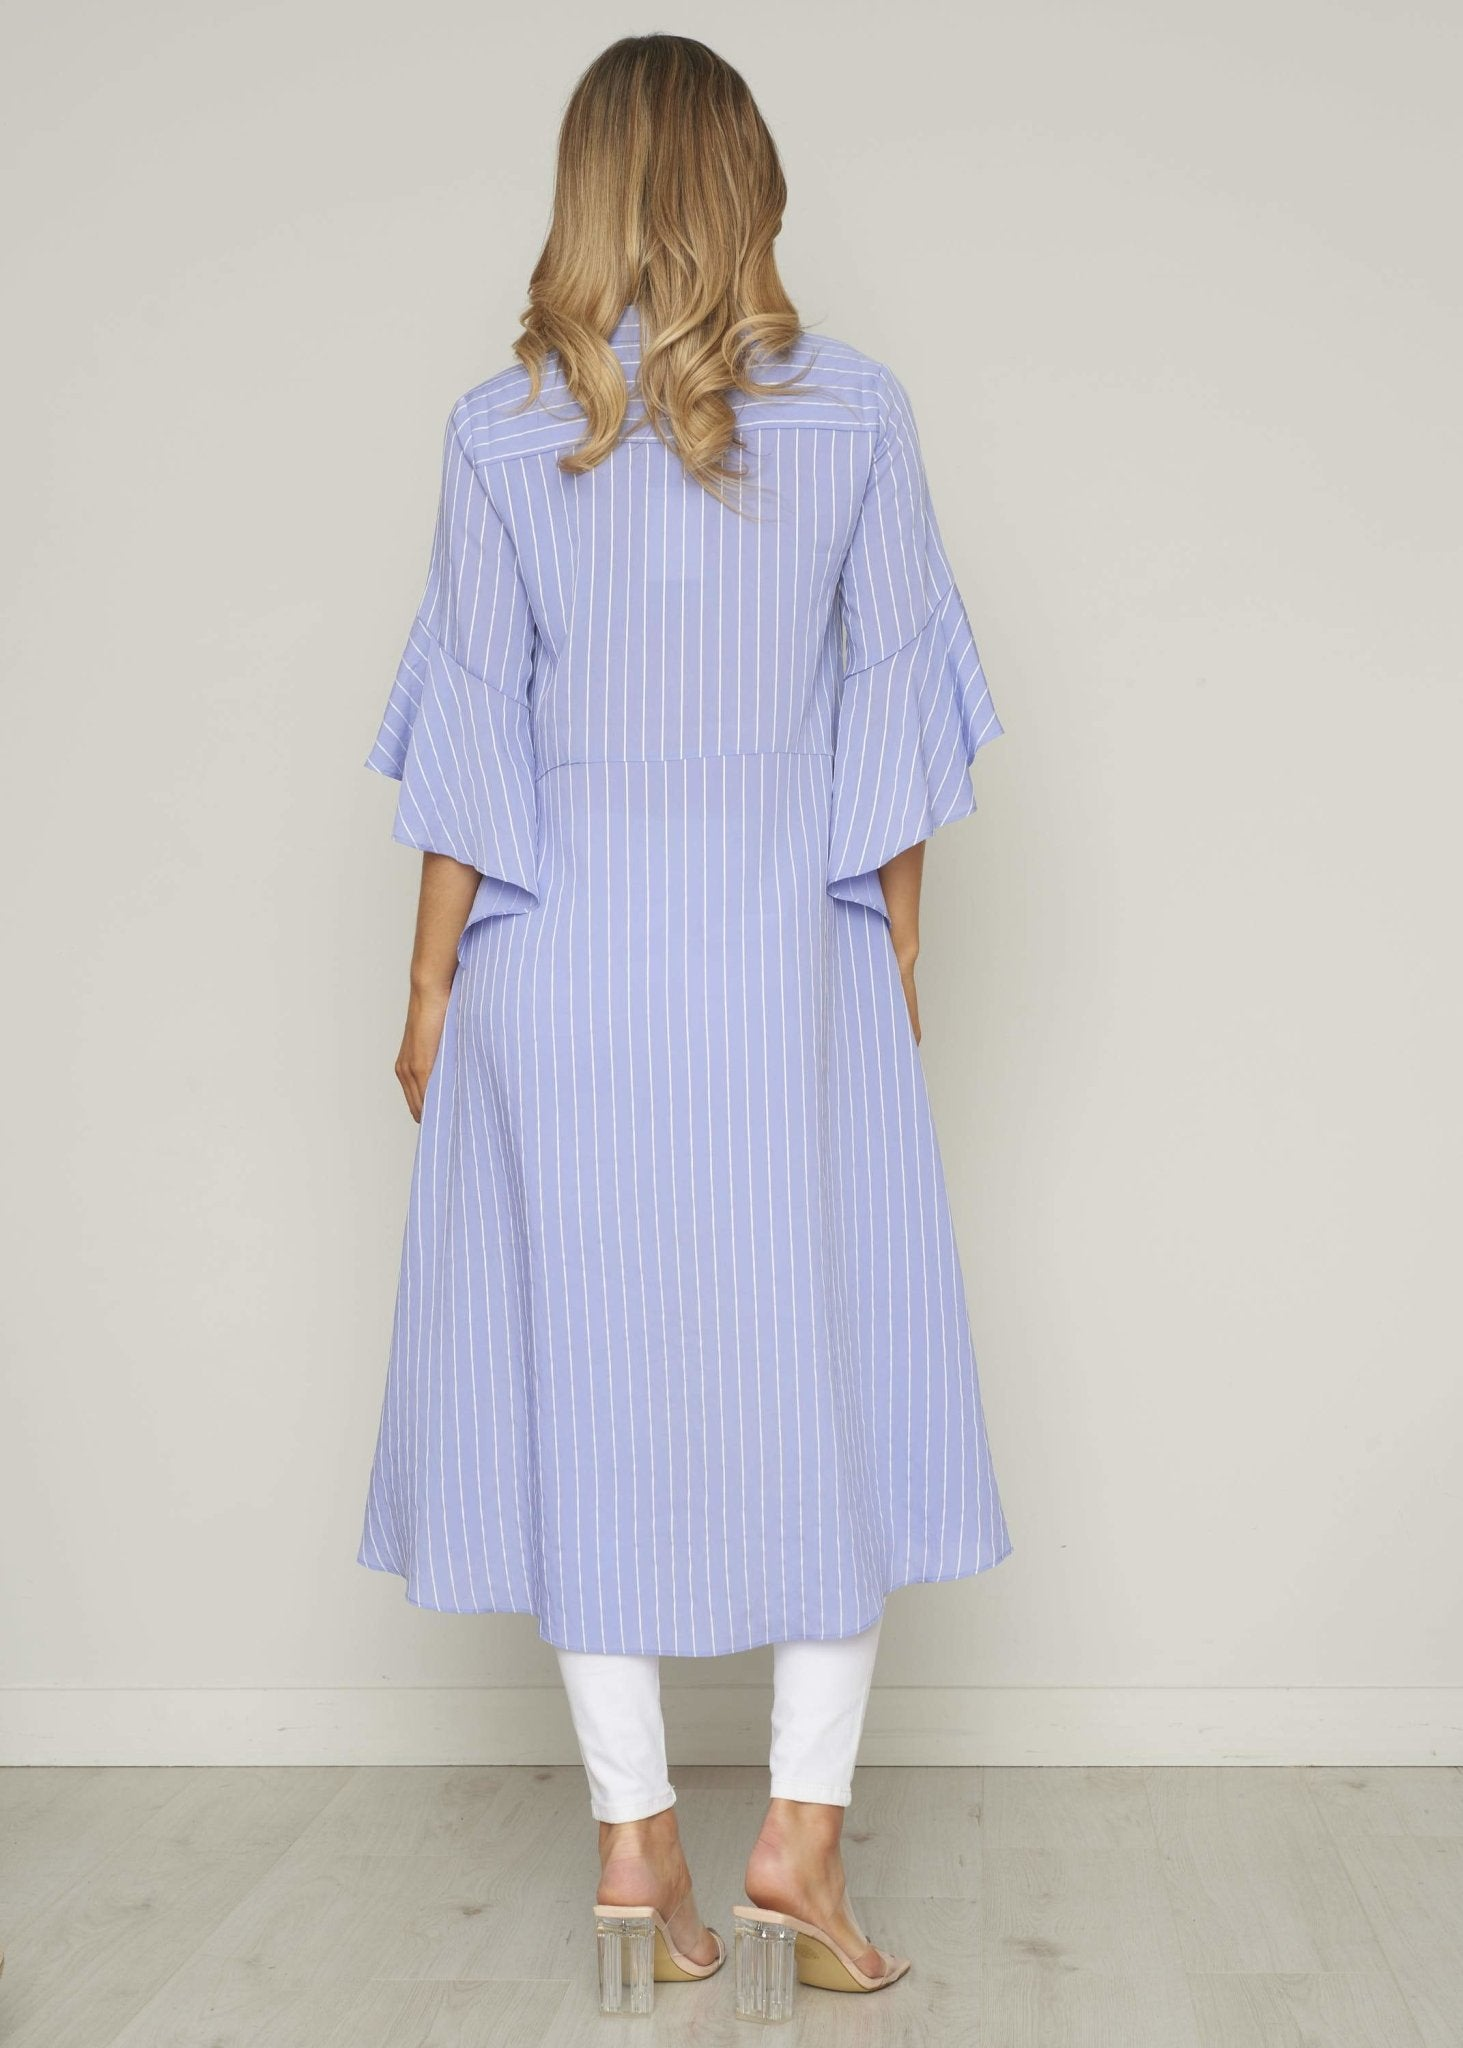 Jasmine High Low Shirt Dress In Blue Pinstripe - The Walk in Wardrobe